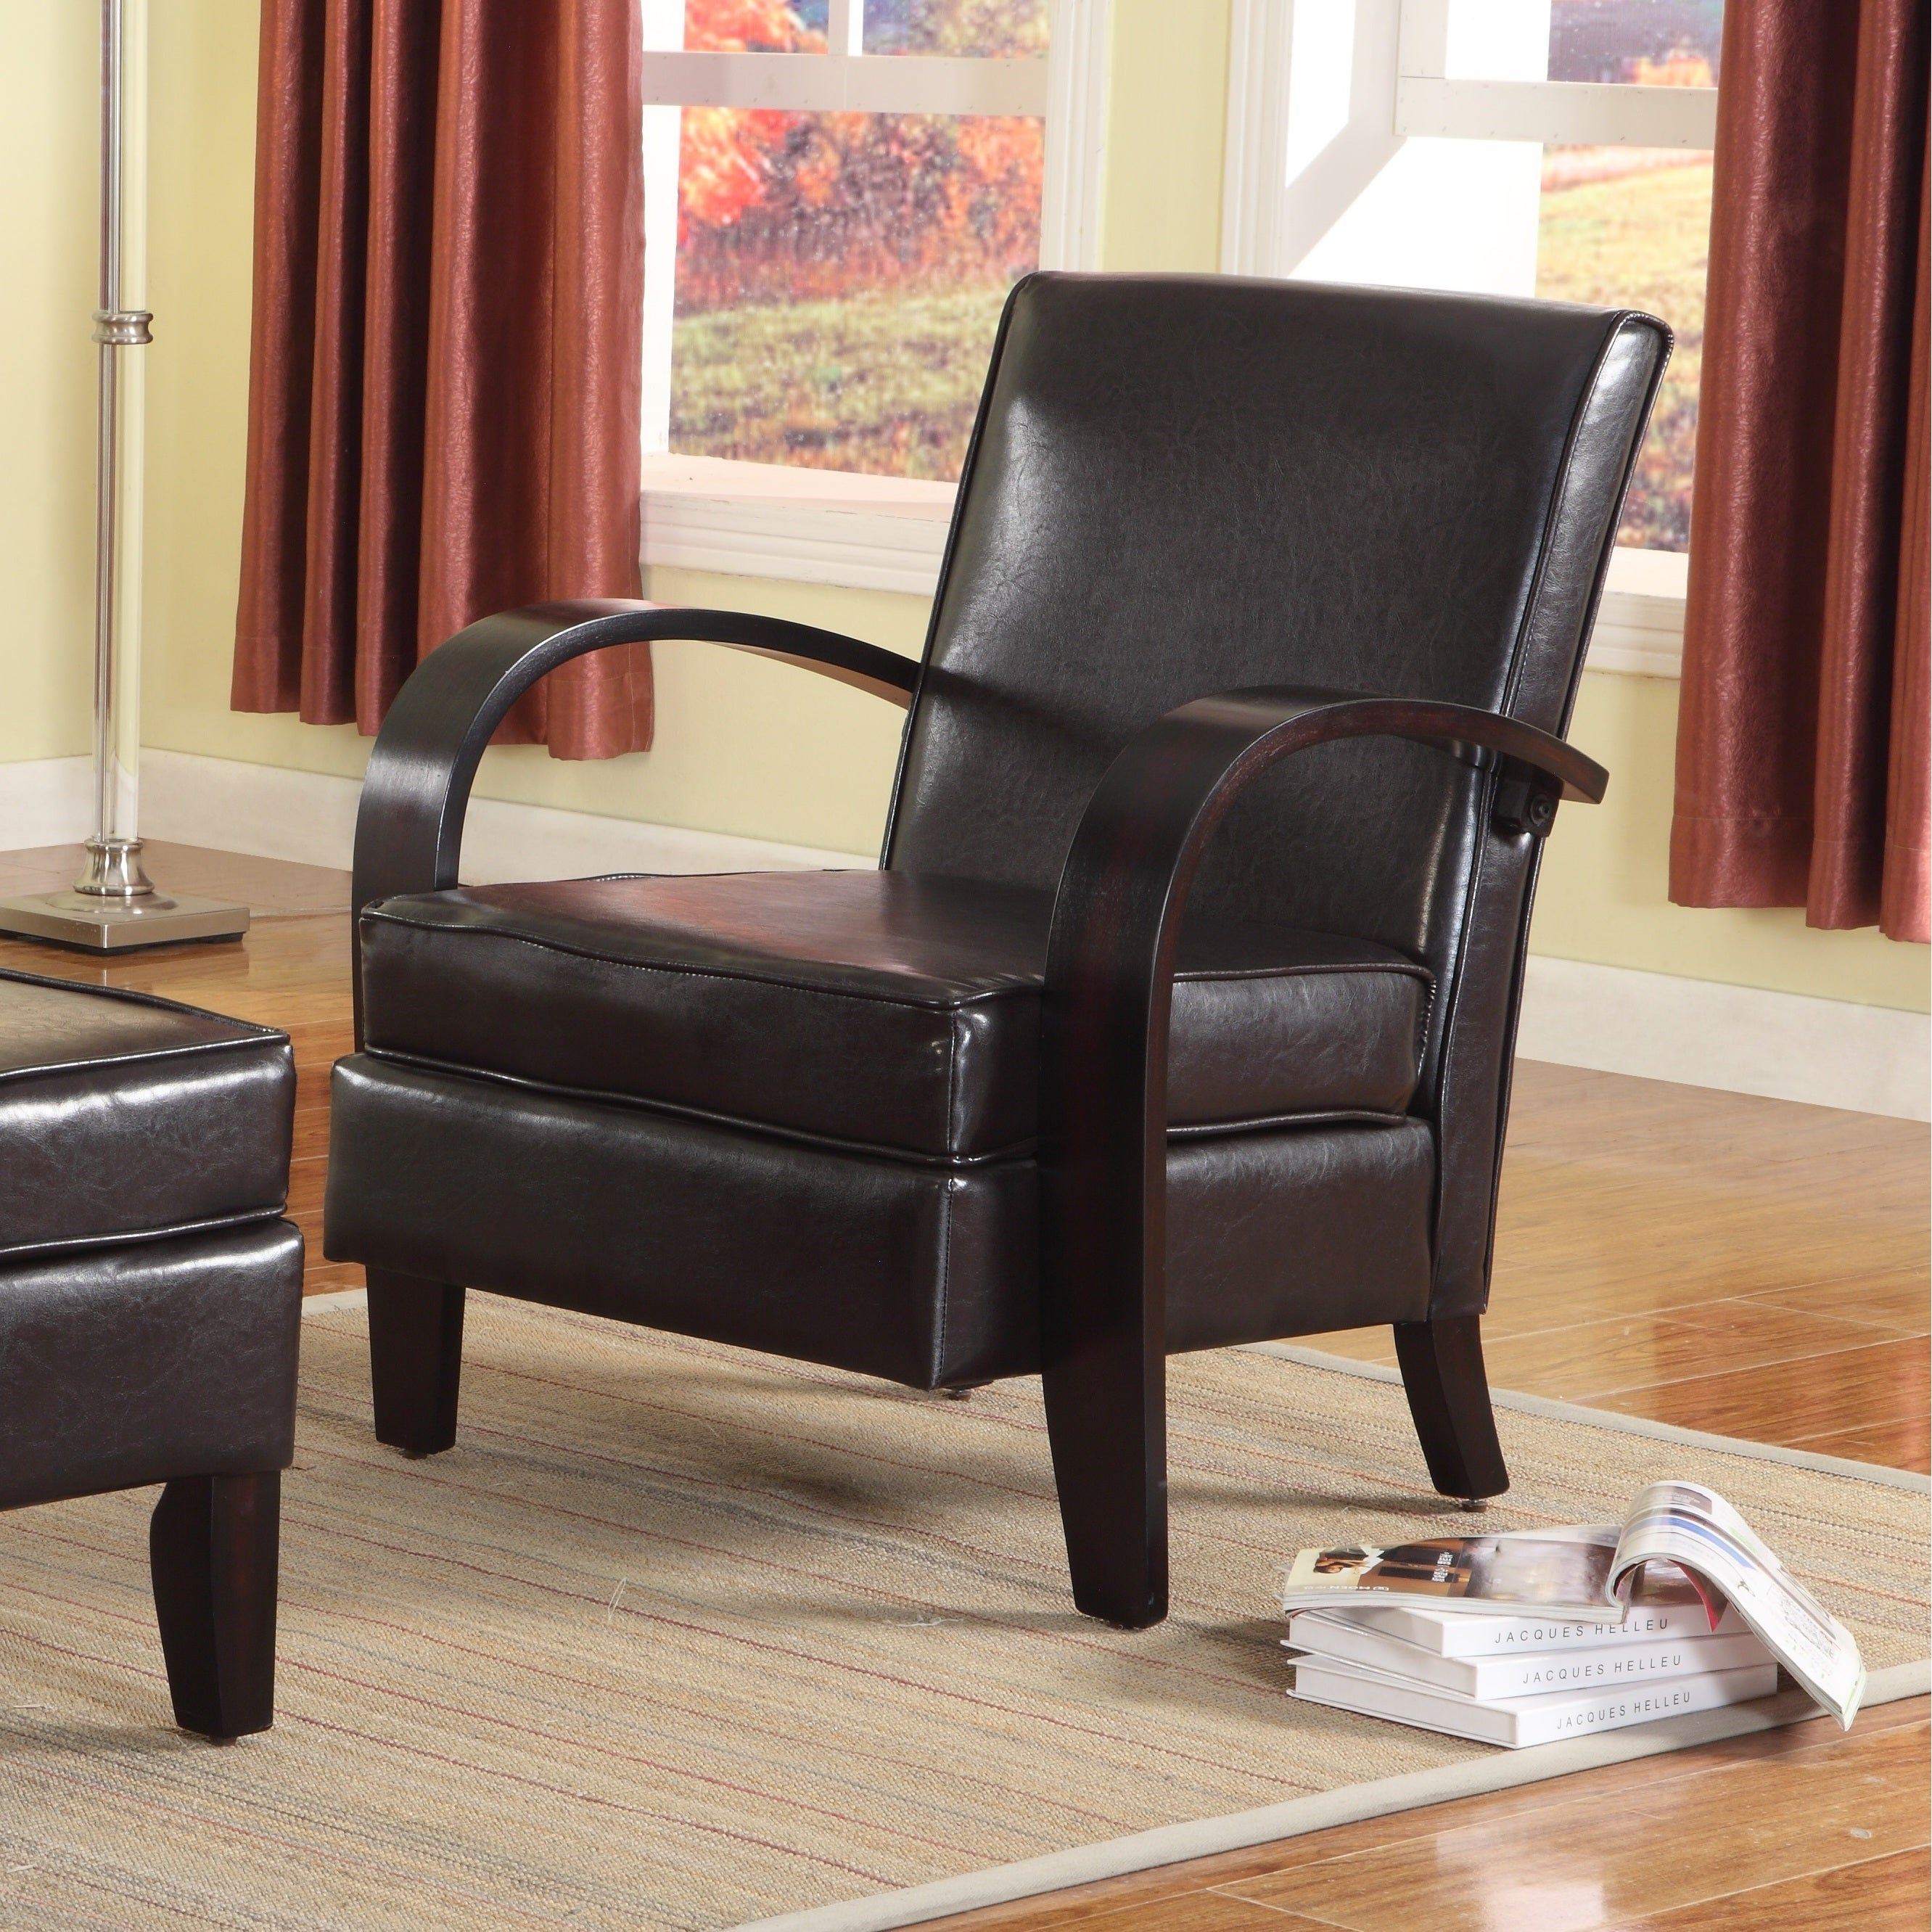 Shop Wonda Brown Bonded Leather Accent Arm Chair With Ottoman   Free  Shipping Today   Overstock.com   10858604